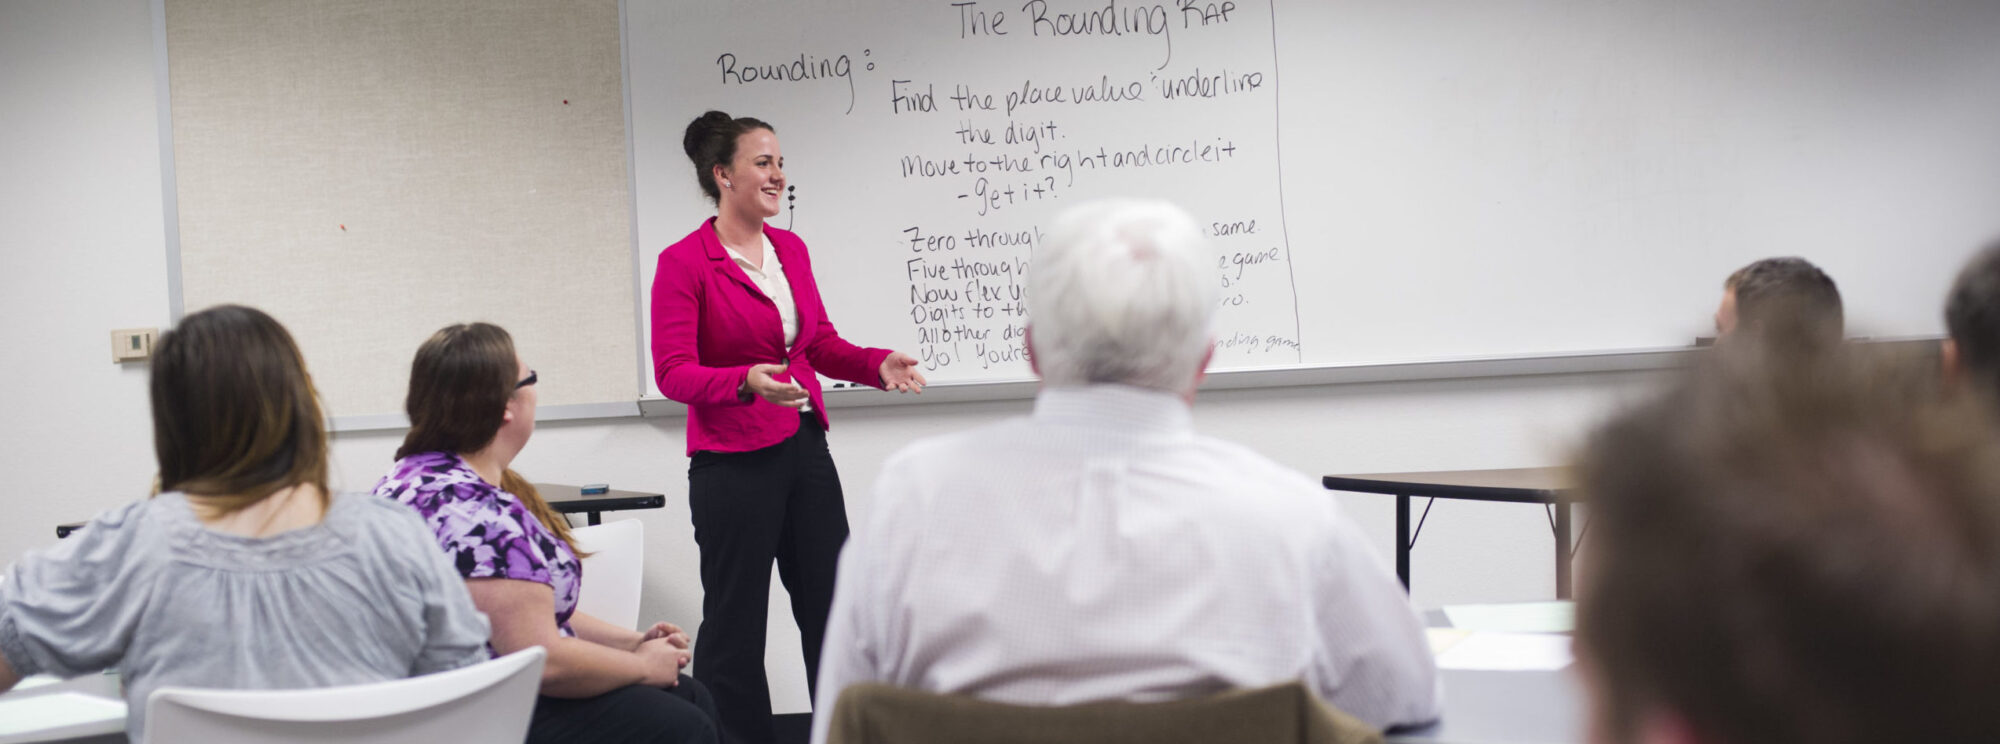 Young woman teaching classroom with the Classroom Rap written on whiteboard in the background.